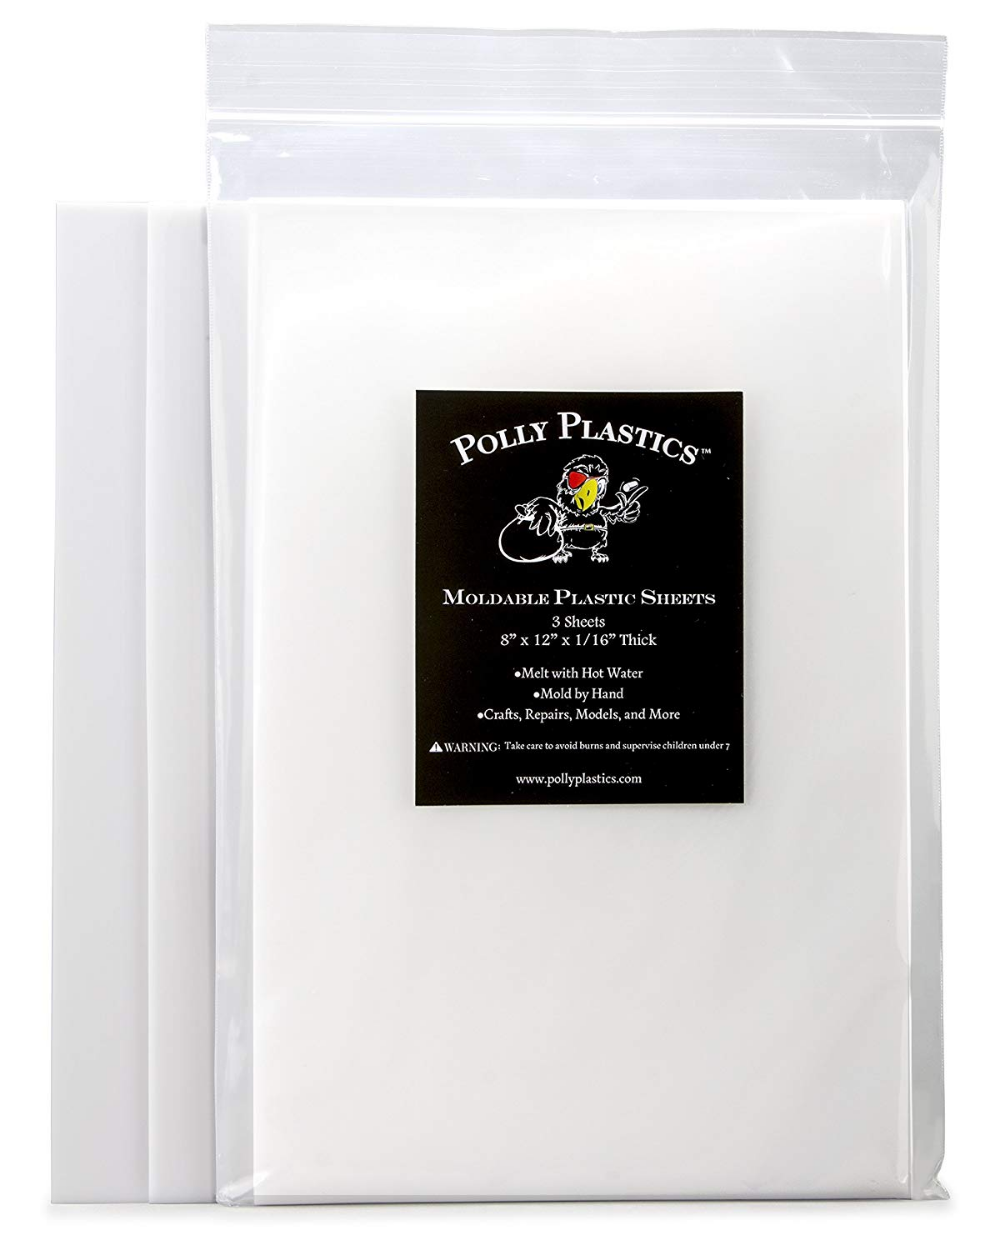 Amazonsmile Polly Plastics Heat Moldable Plastic Sheets 8 Inch X 12 Inch X 1 16 Inch For Cosplay Moldable Plastic Sheets Polly Plastics Moldable Plastic